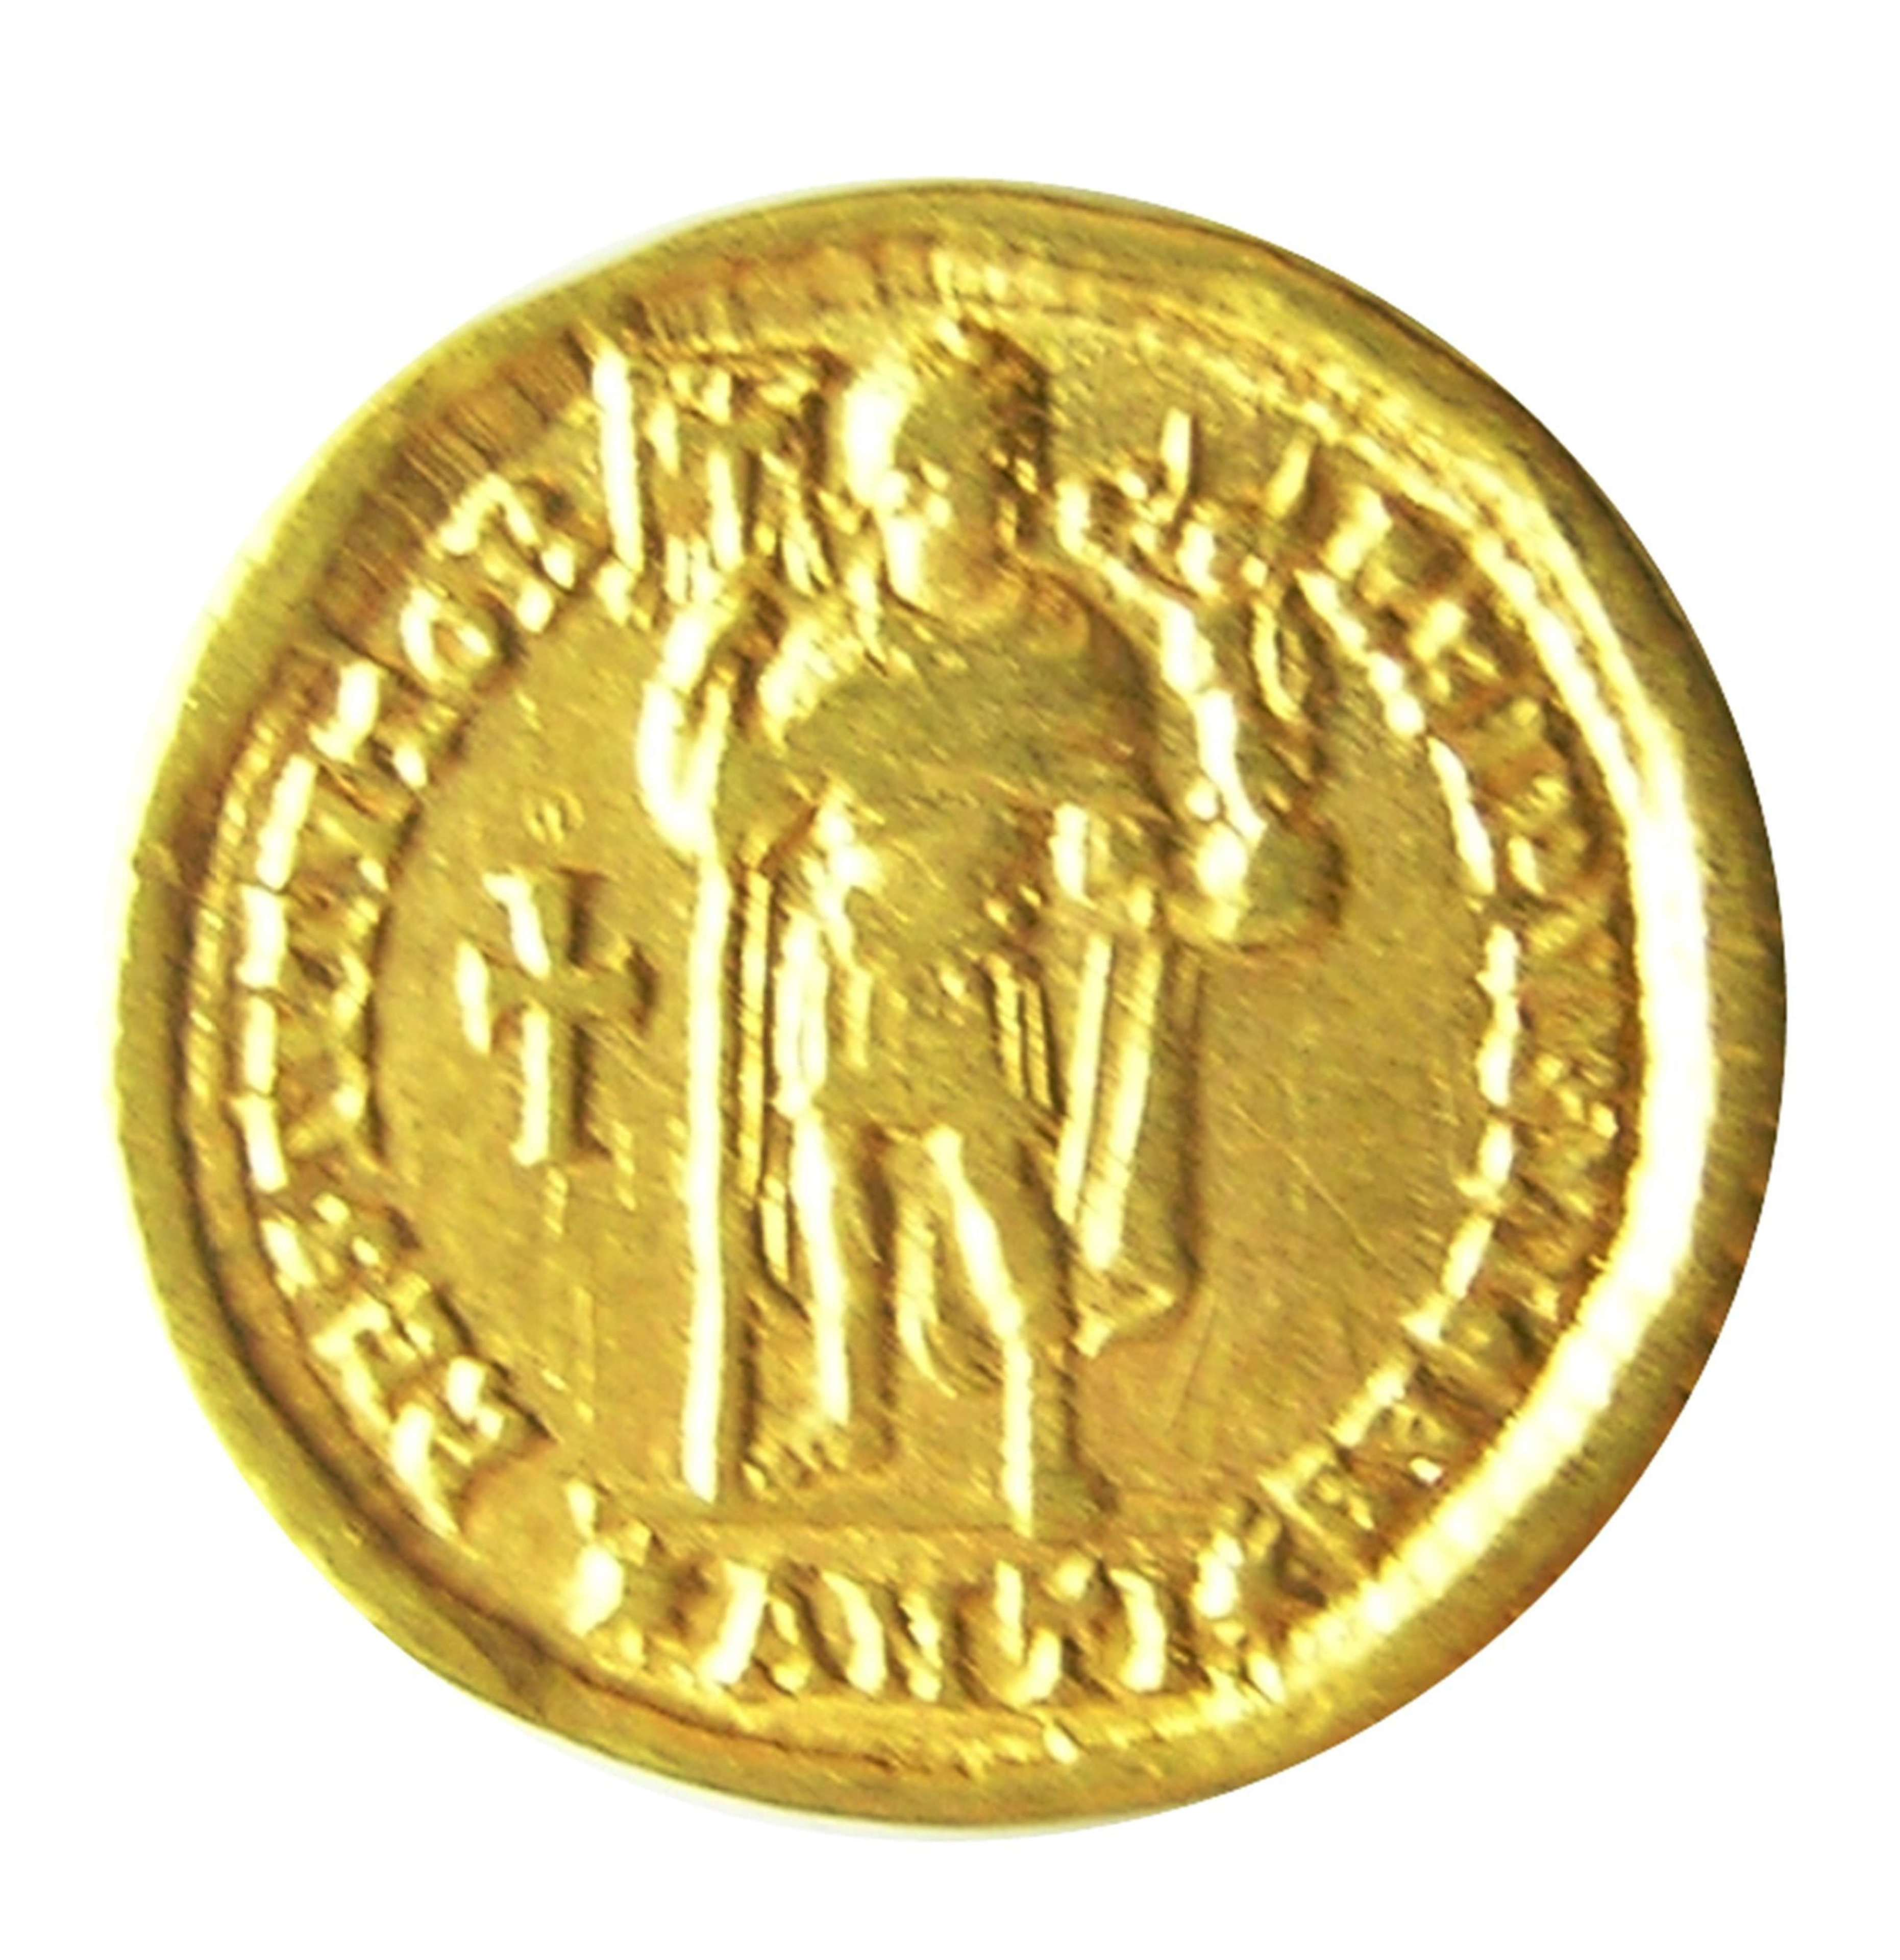 Roman Gold Solidus of Emperor Valens minted in Antioch